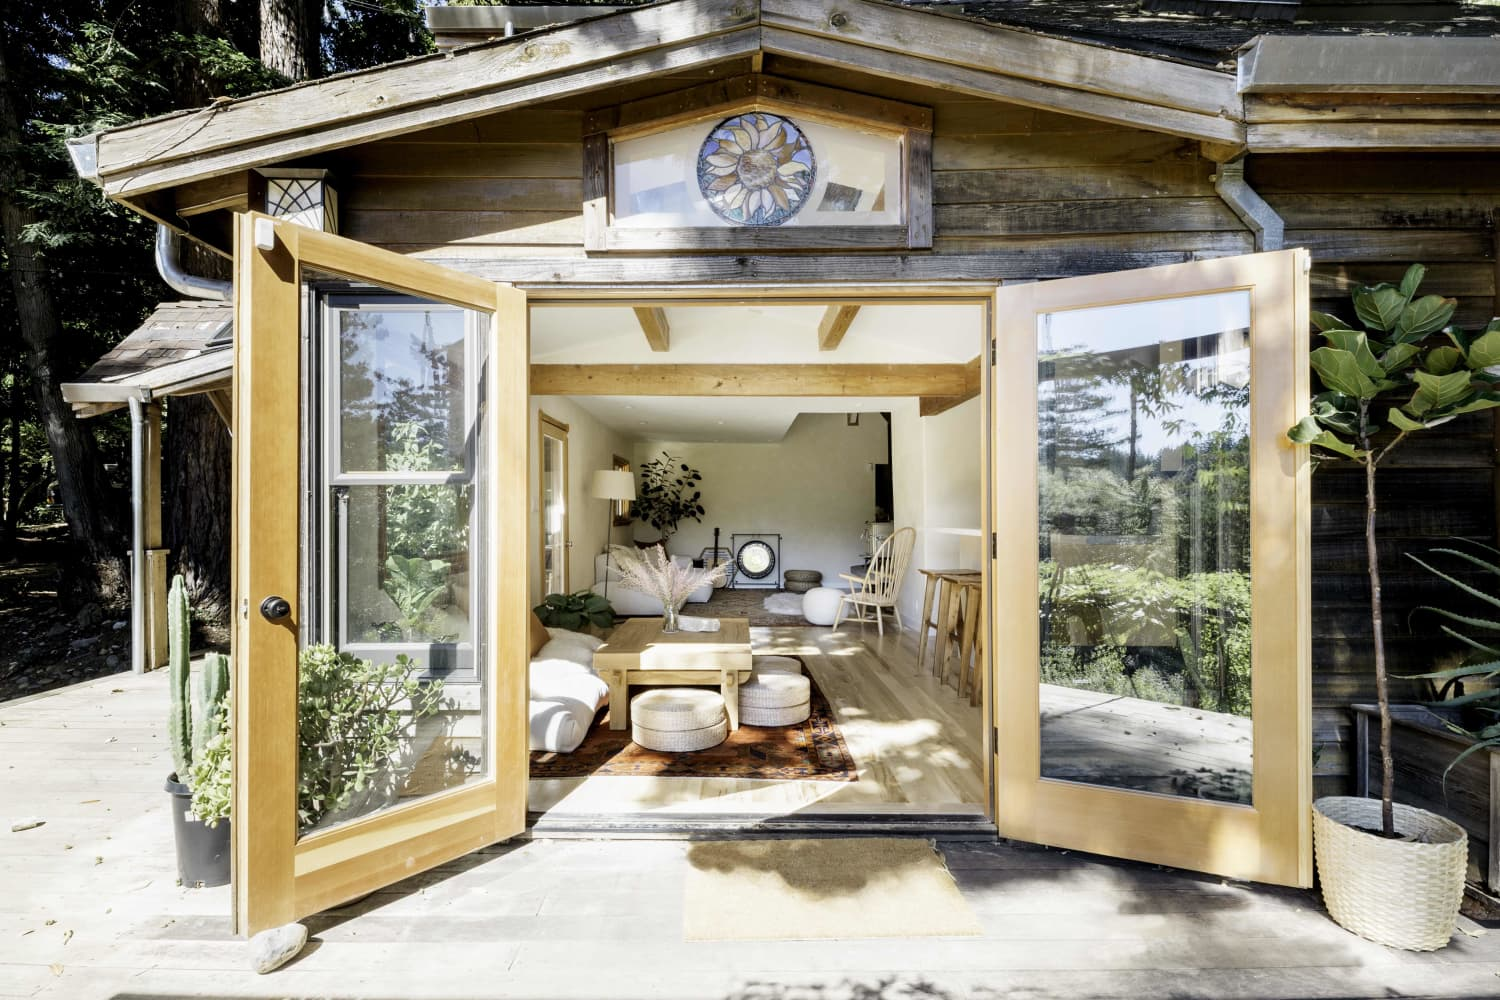 This Cozy, Light-Filled California Cabin Makes for a Magical Home